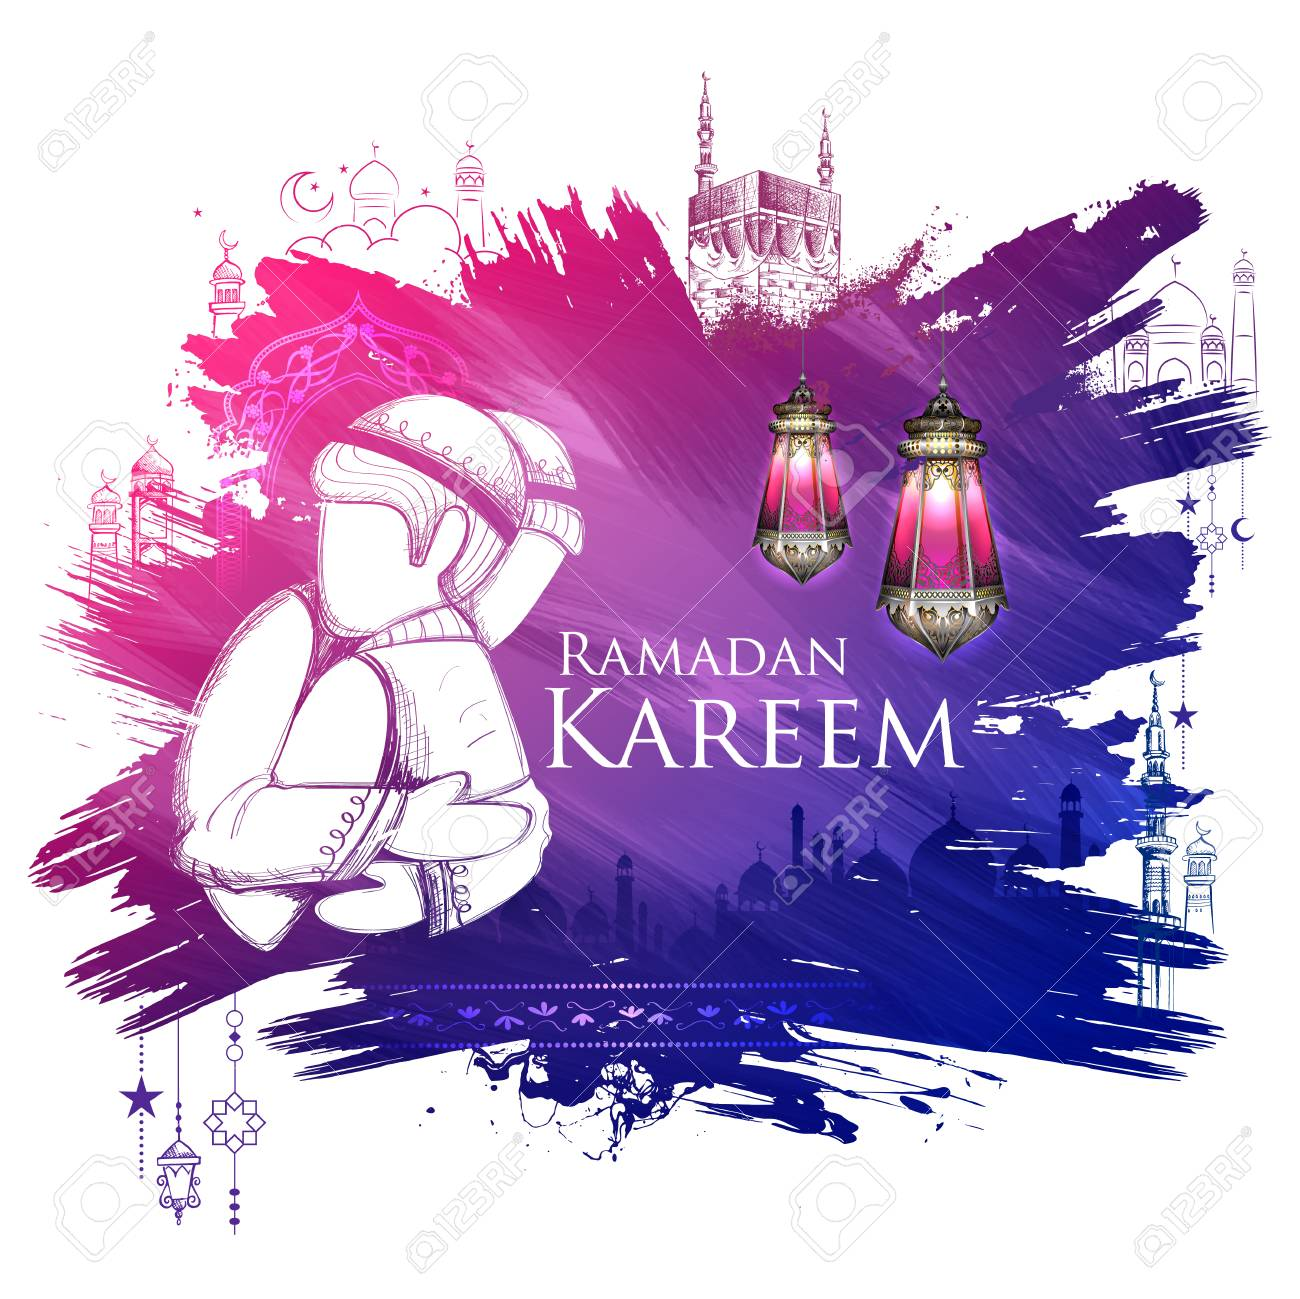 Illustration of ramadan kareem generous ramadan greetings for illustration of ramadan kareem generous ramadan greetings for islam religious festival eid with freehand sketch mecca m4hsunfo